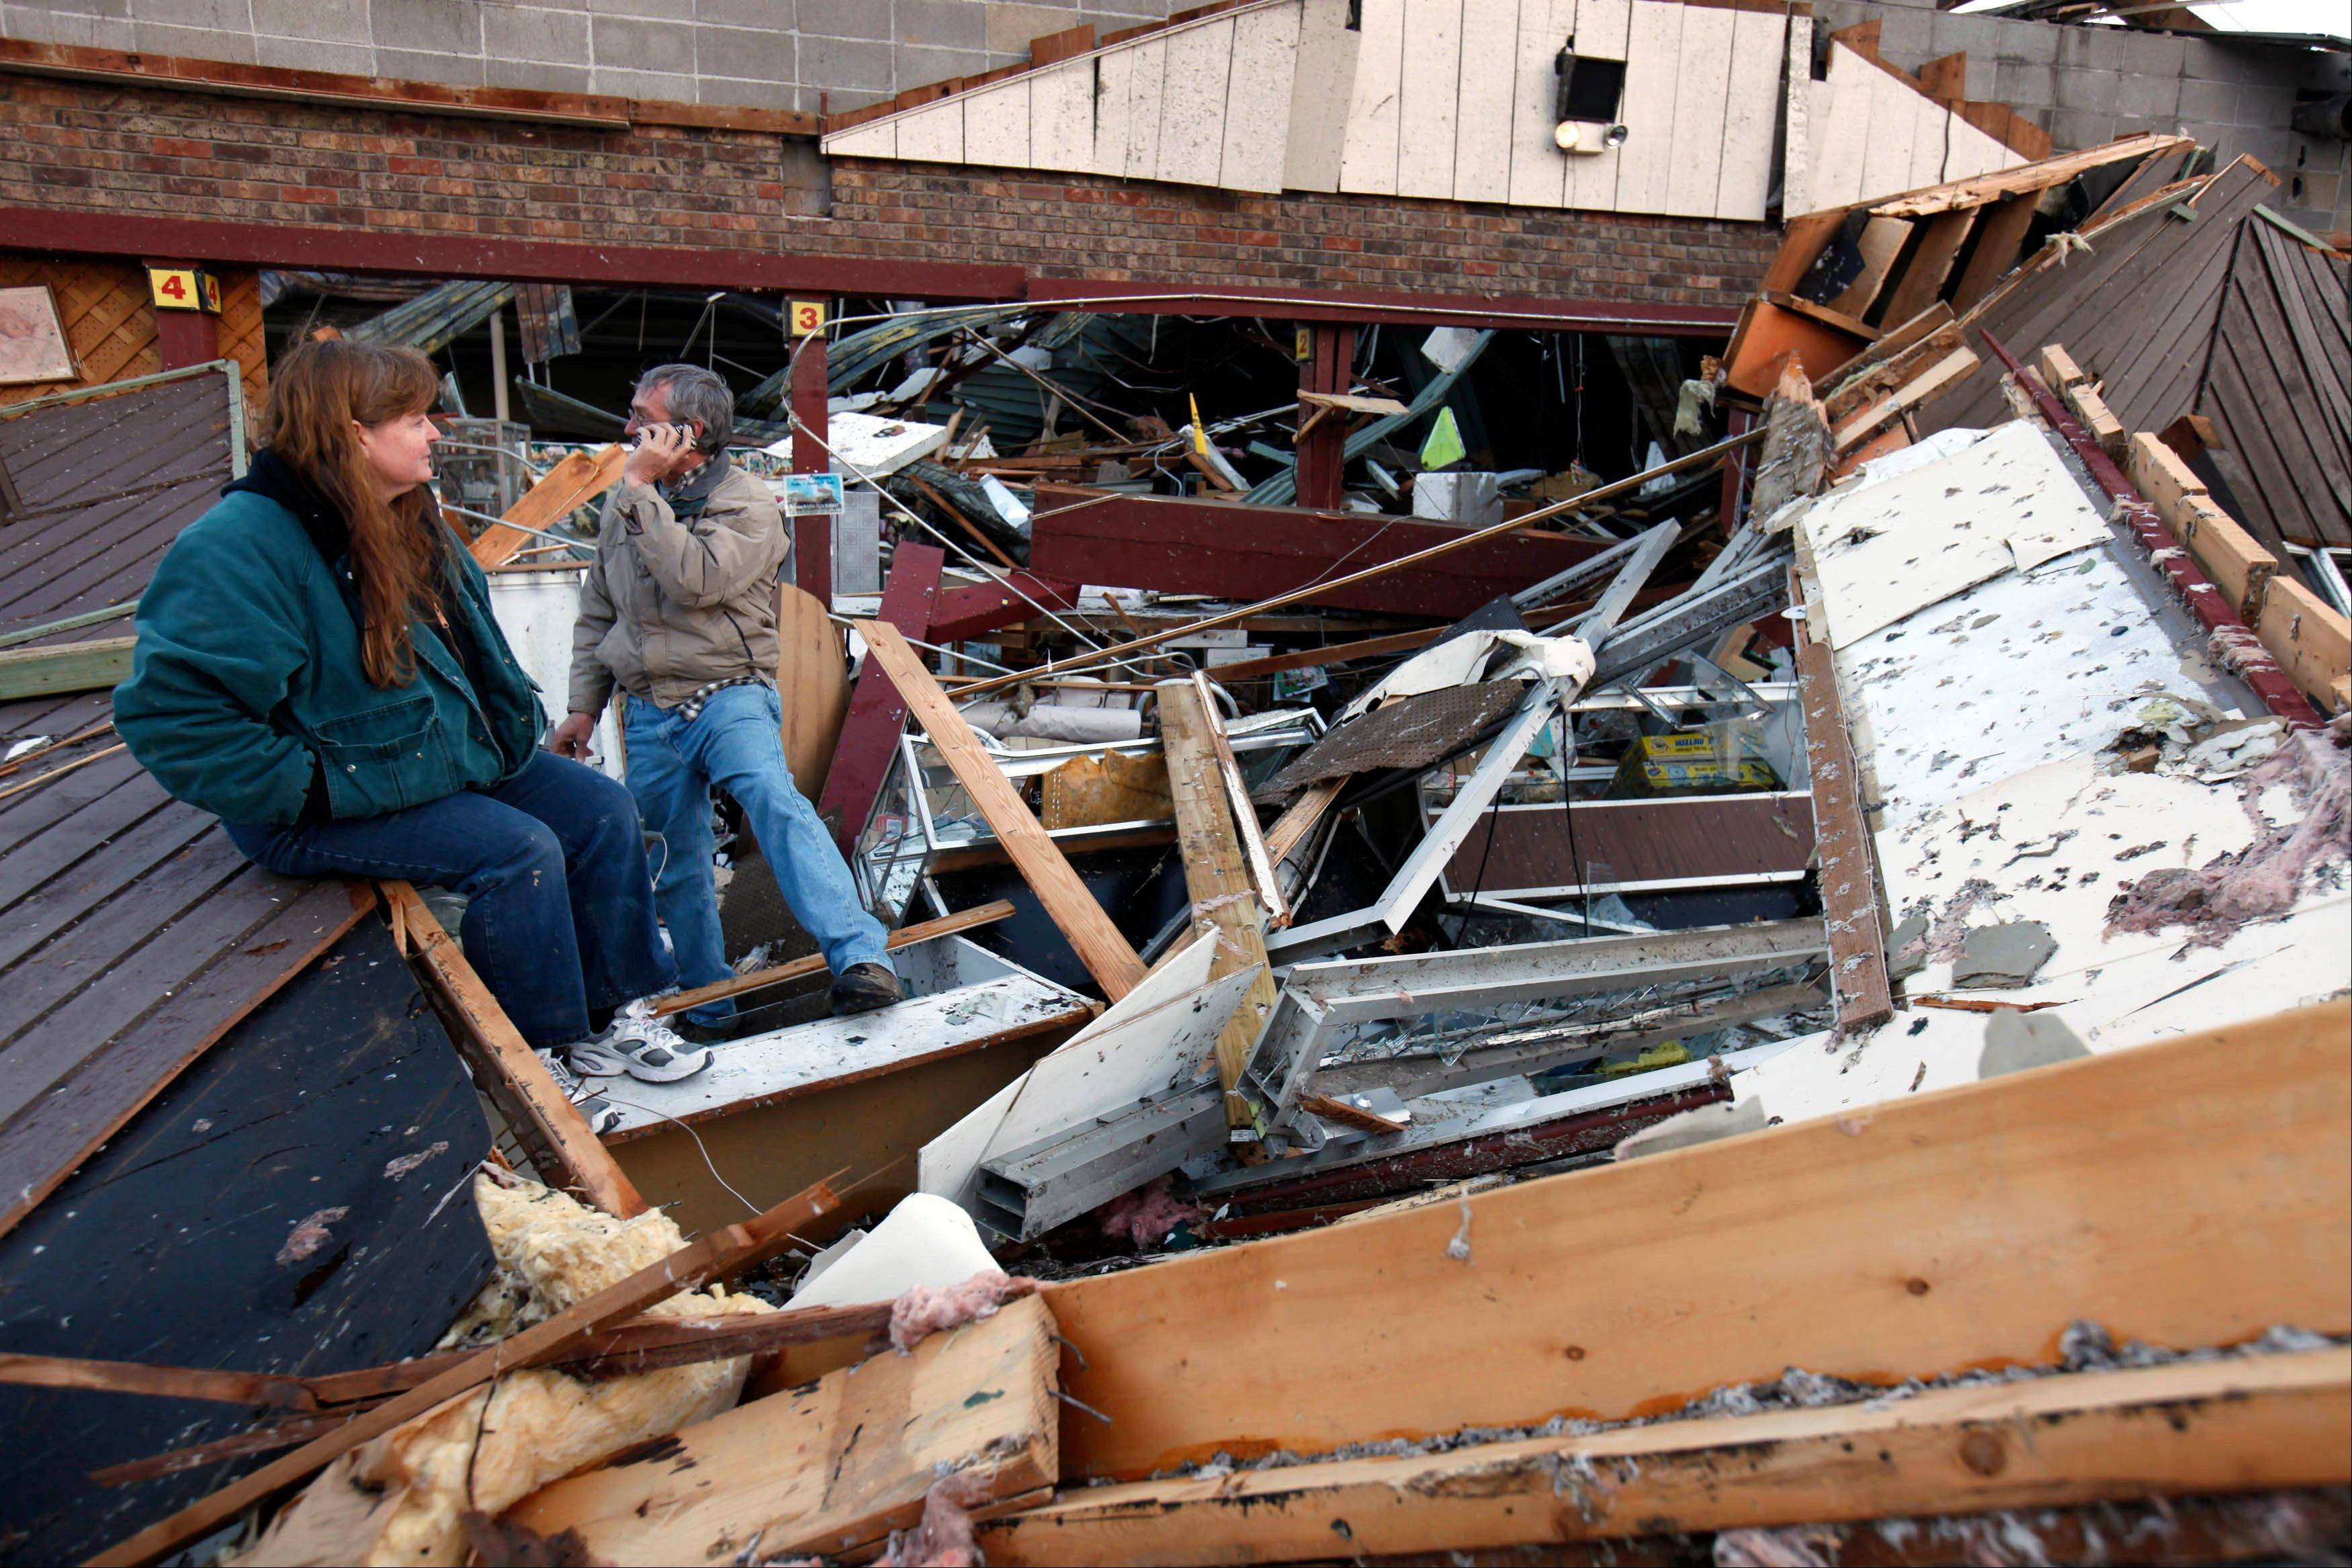 Sherry Cousins and her brother Bruce Wallace of Hollister, Mo., sit in the wreckage of their secondhand store in Branson, Mo, Wednesday, Feb. 29, 2012. A powerful storm system that produced multiple reports of tornadoes lashed the Midwest early Wednesday, roughing up the country music resort city of Branson.